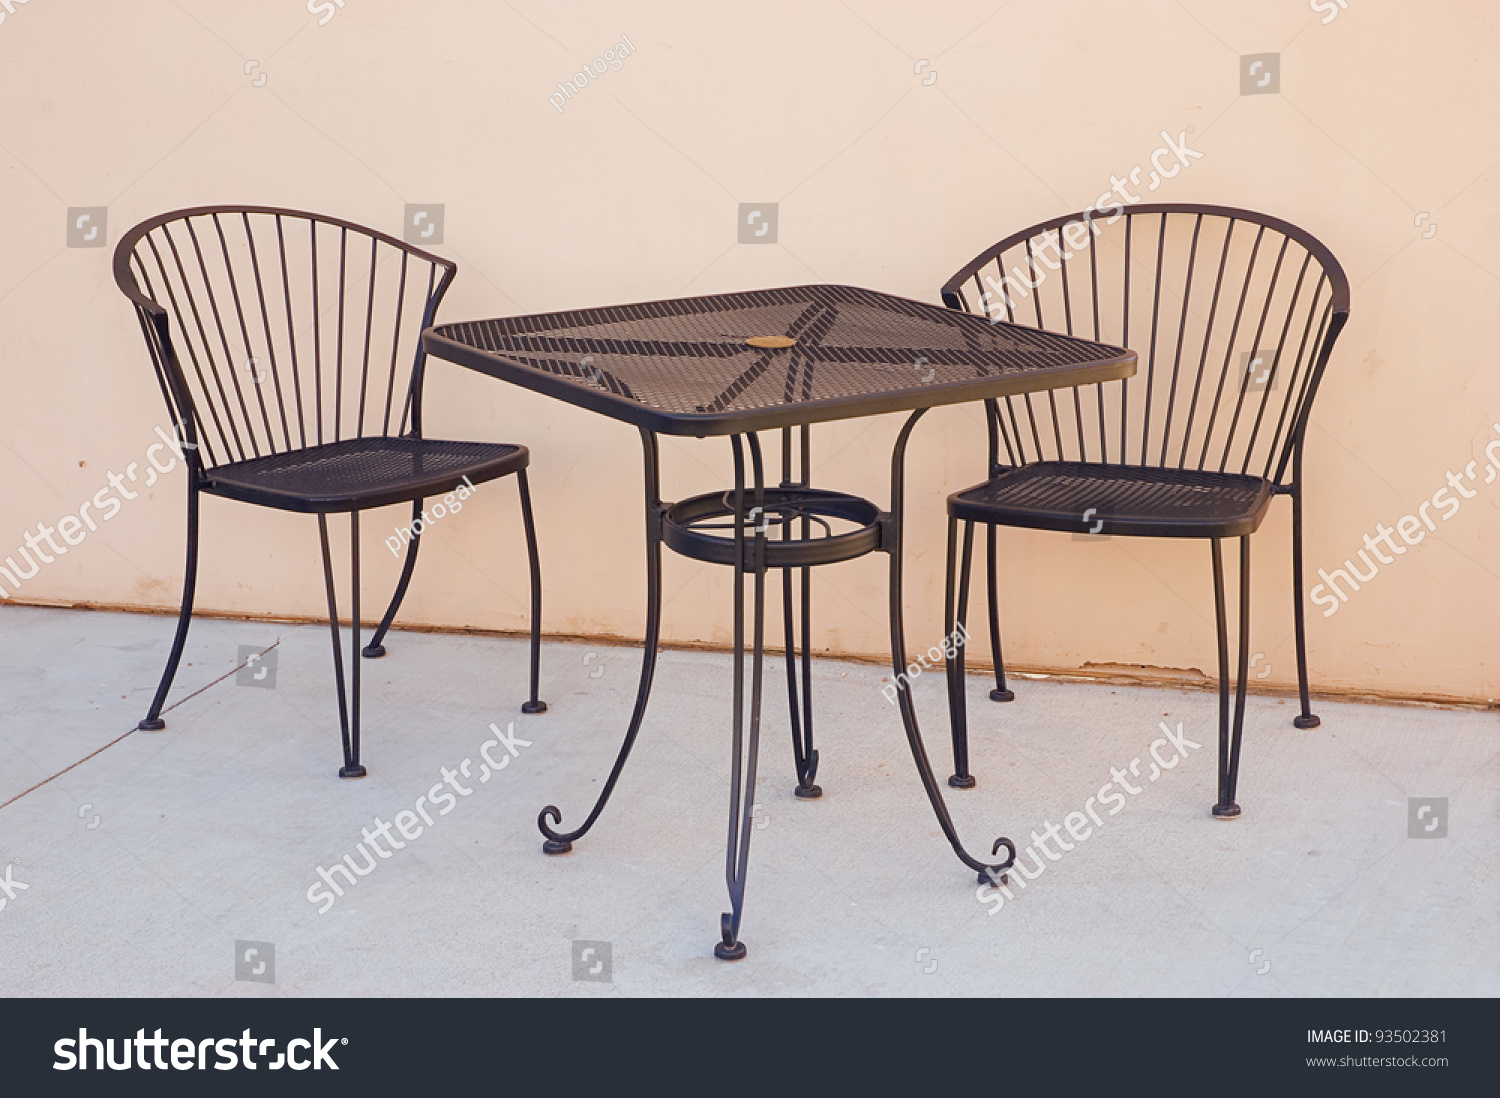 Wrought iron table and chairs outside sidewalk cafe for Wrought iron cafe chairs